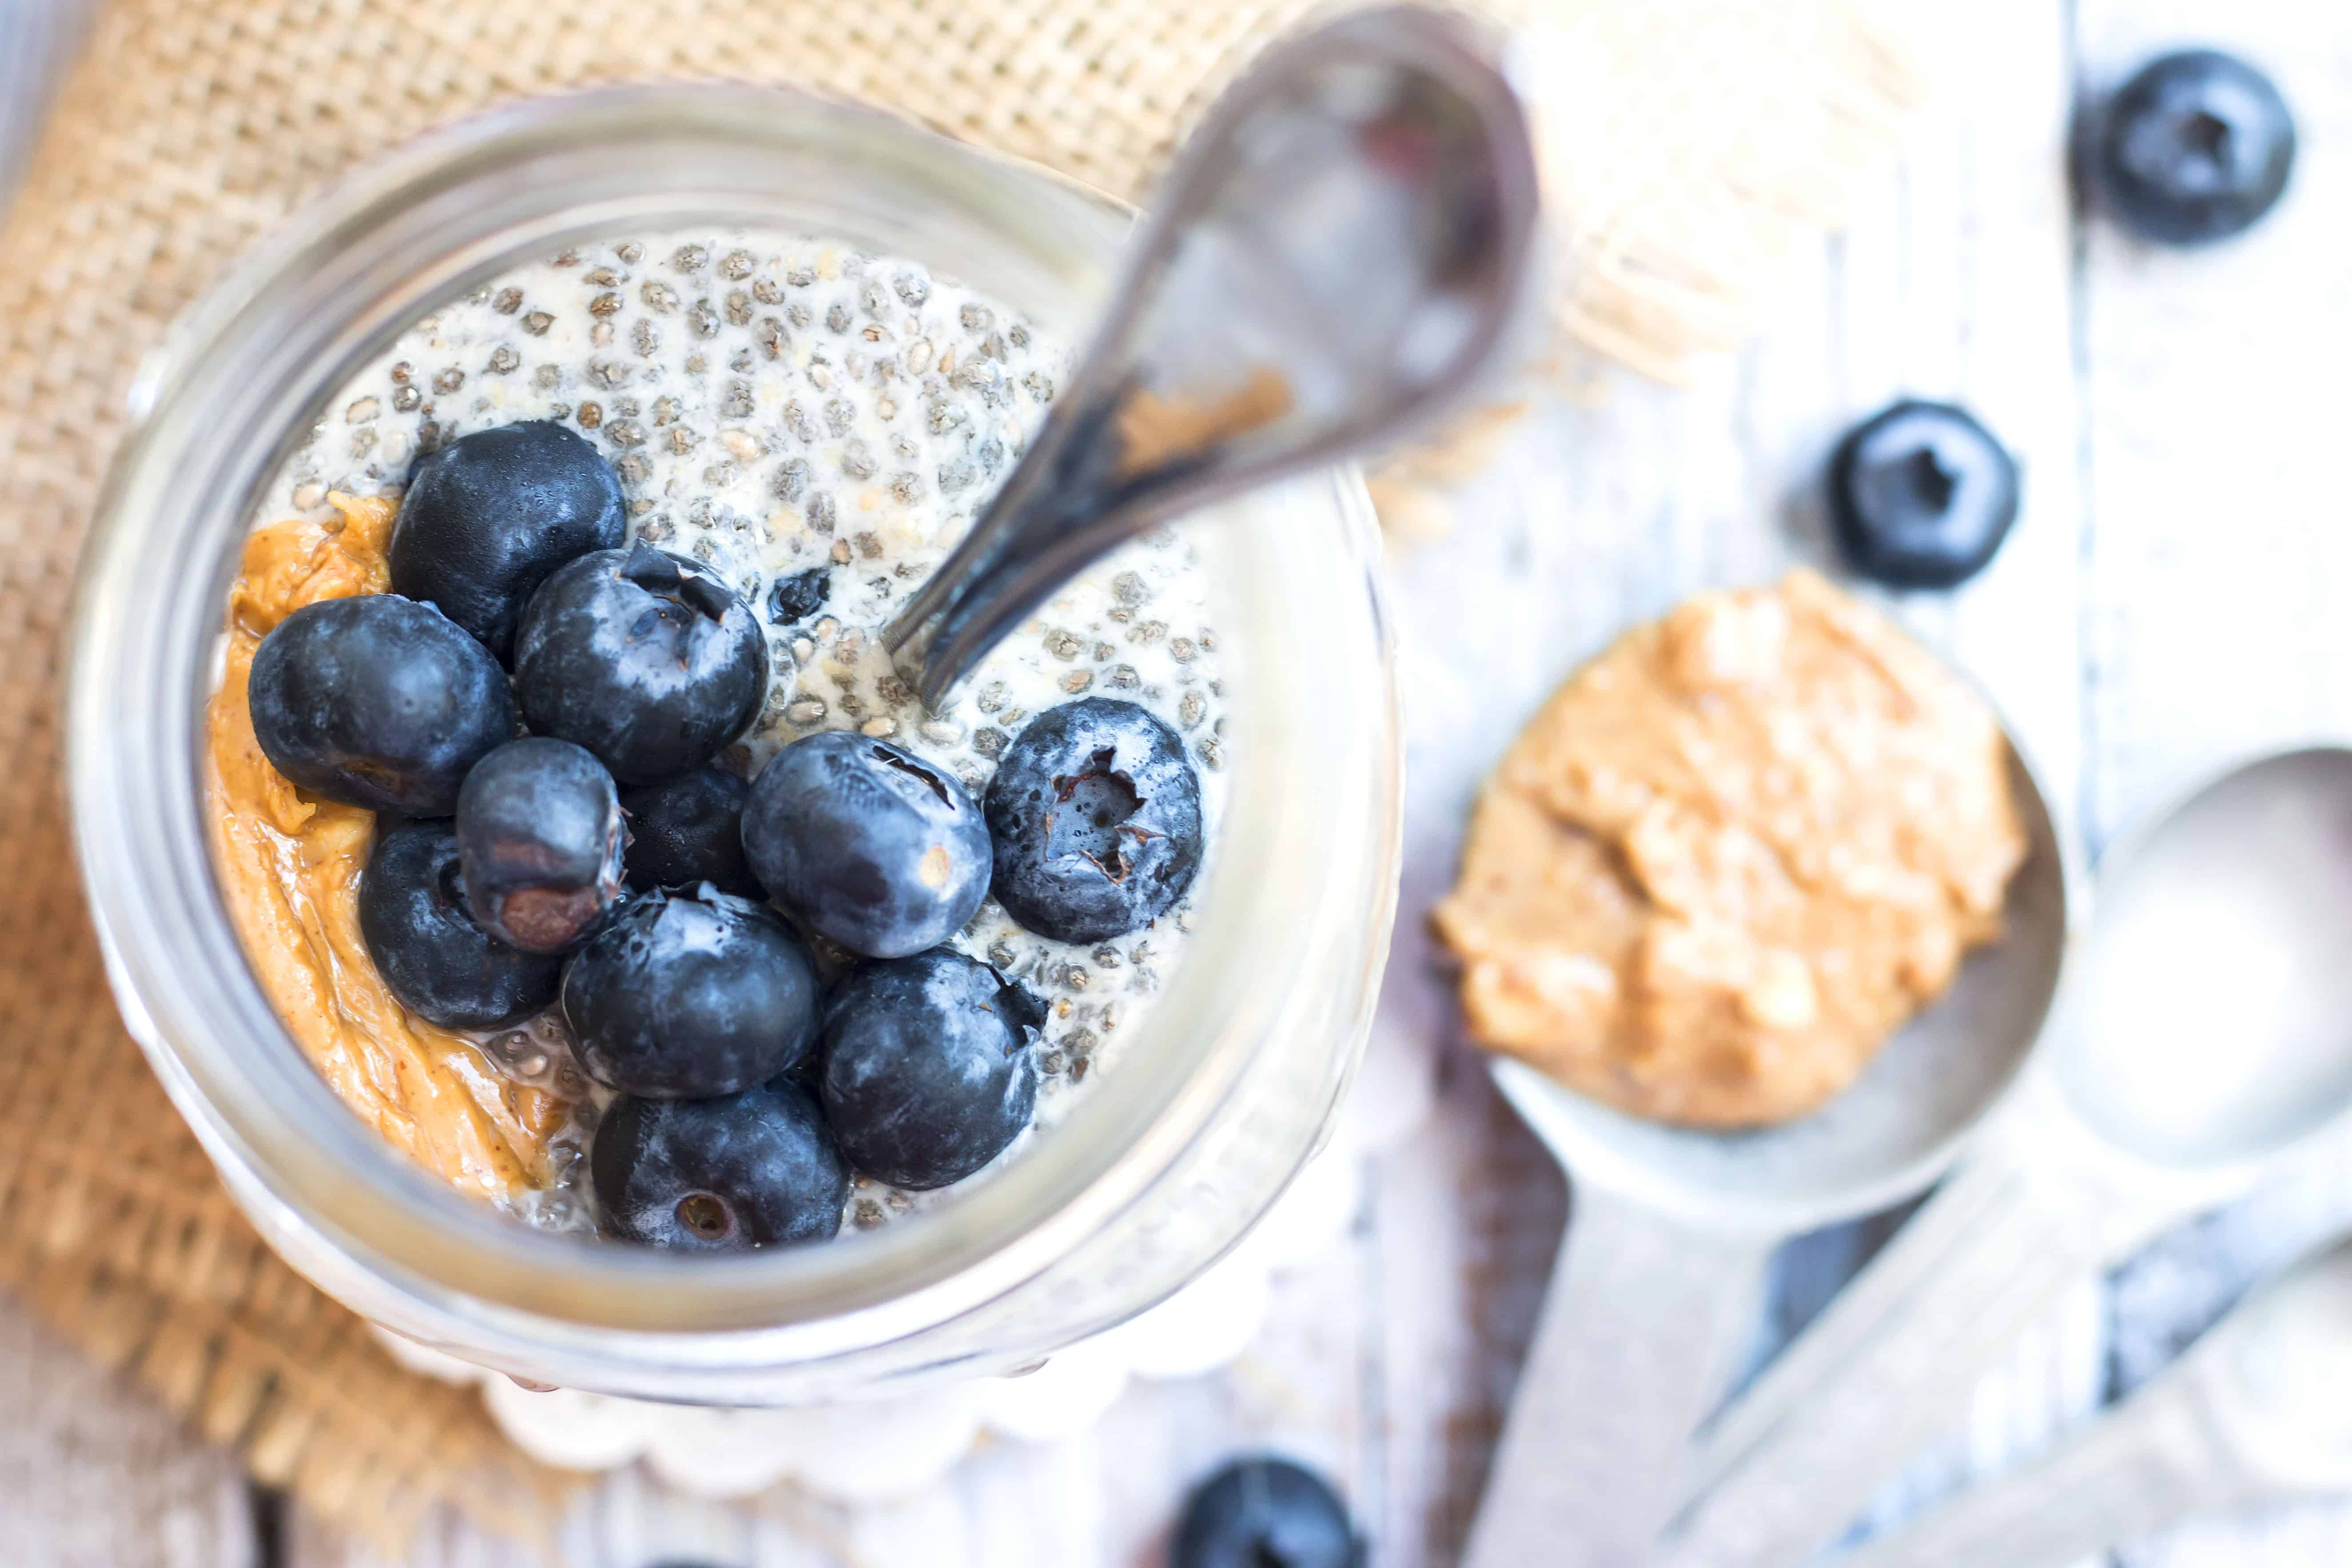 Peanut Butter & Jelly Chia Pudding